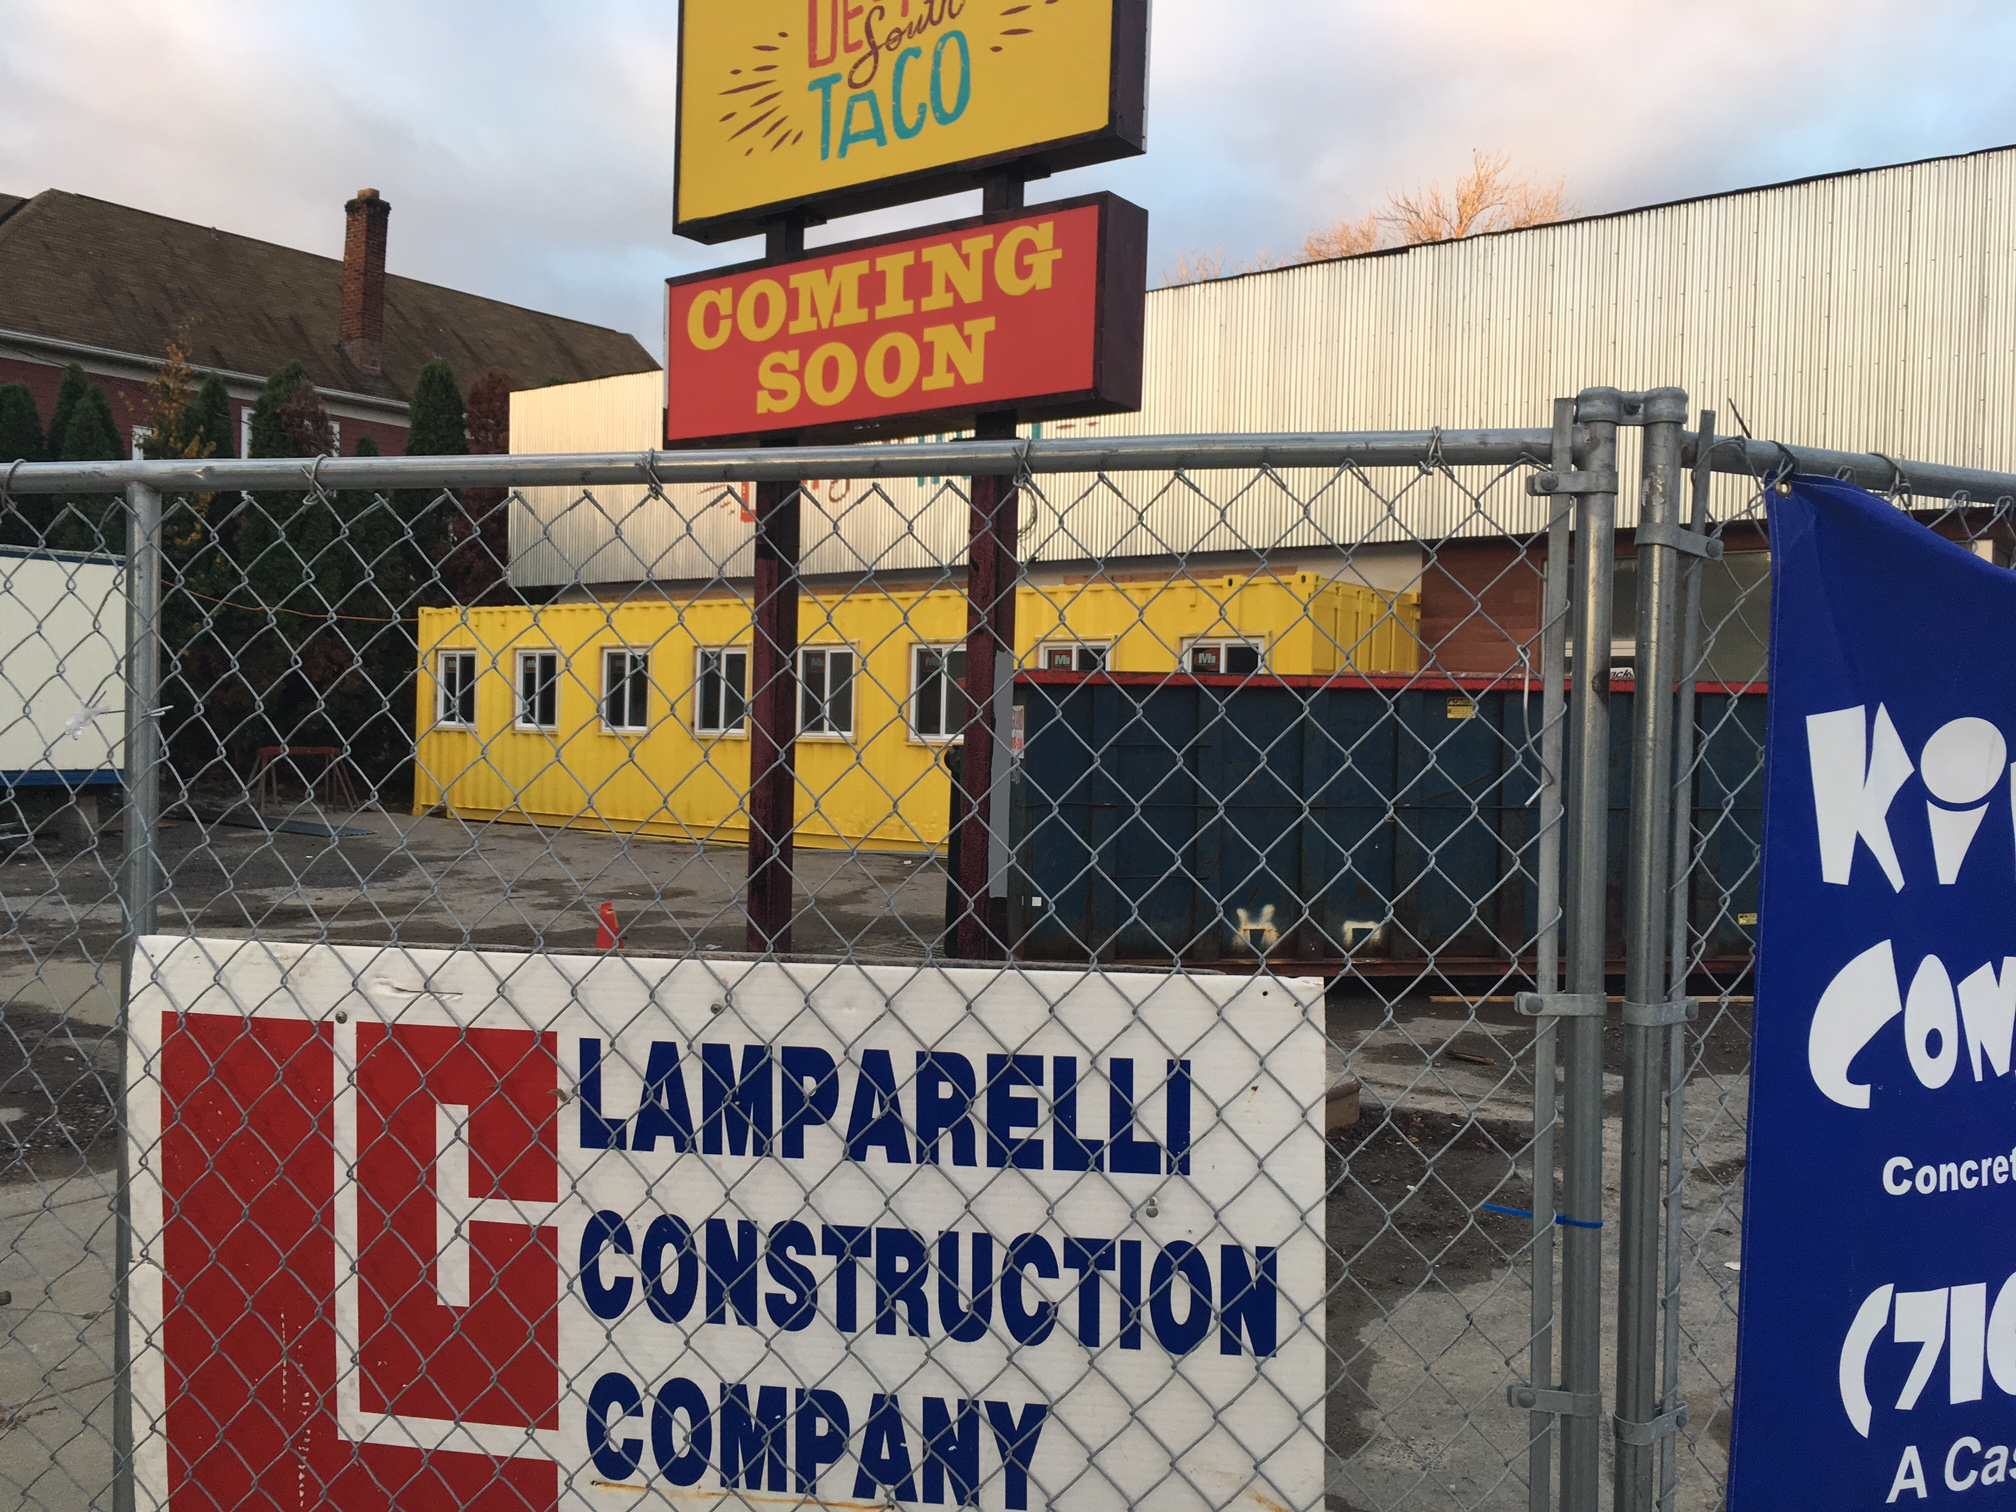 I was walking past Hertel and Starin avenues this morning, so took this picture to show everyone latet on Deep South Taco buildng.